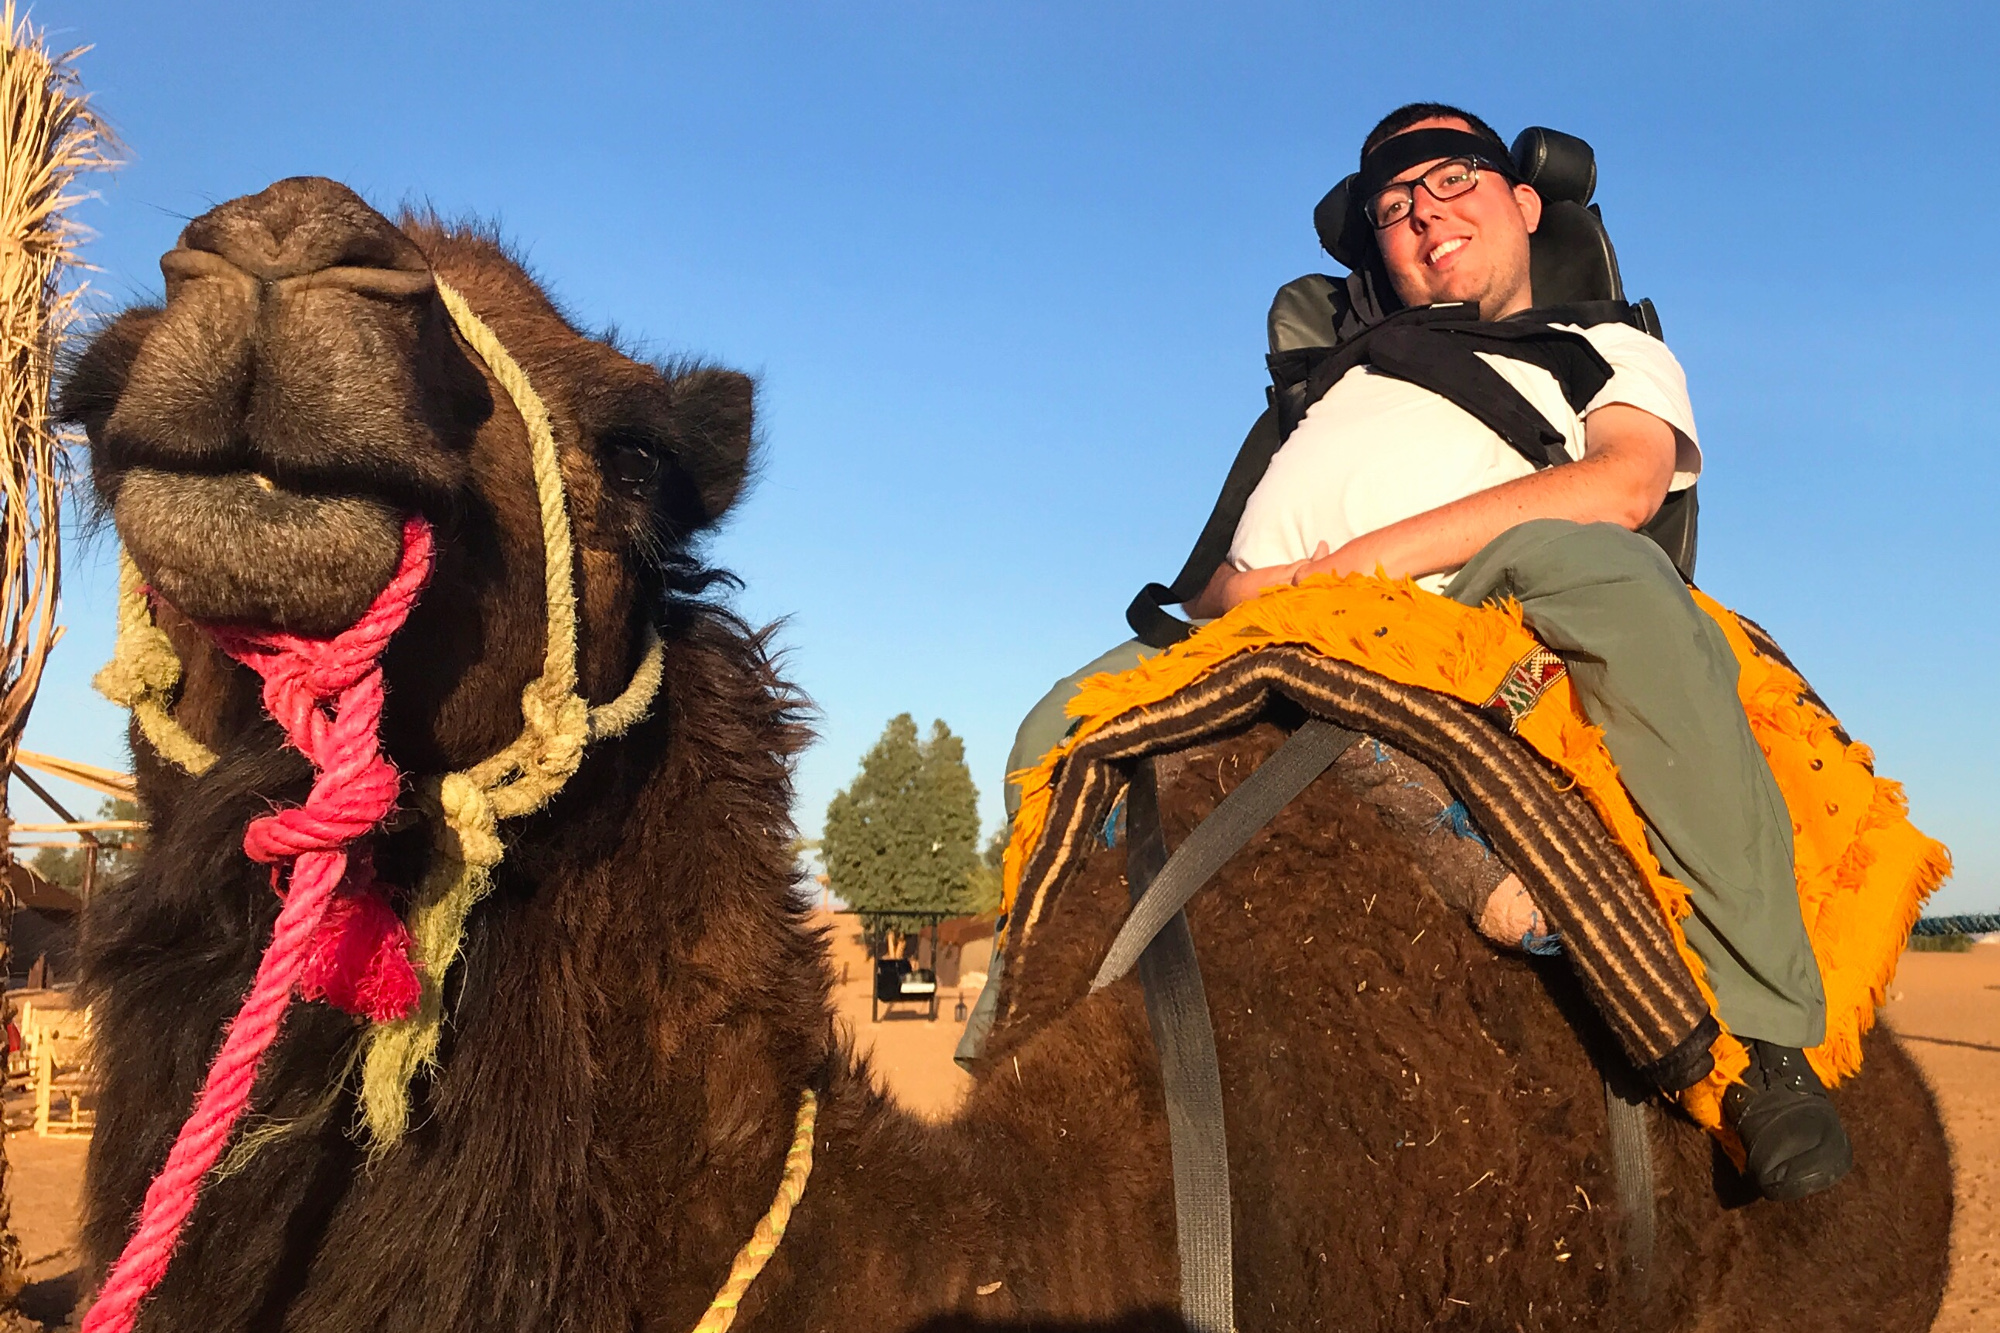 Cory Lee riding a camel in a specially adapted saddle